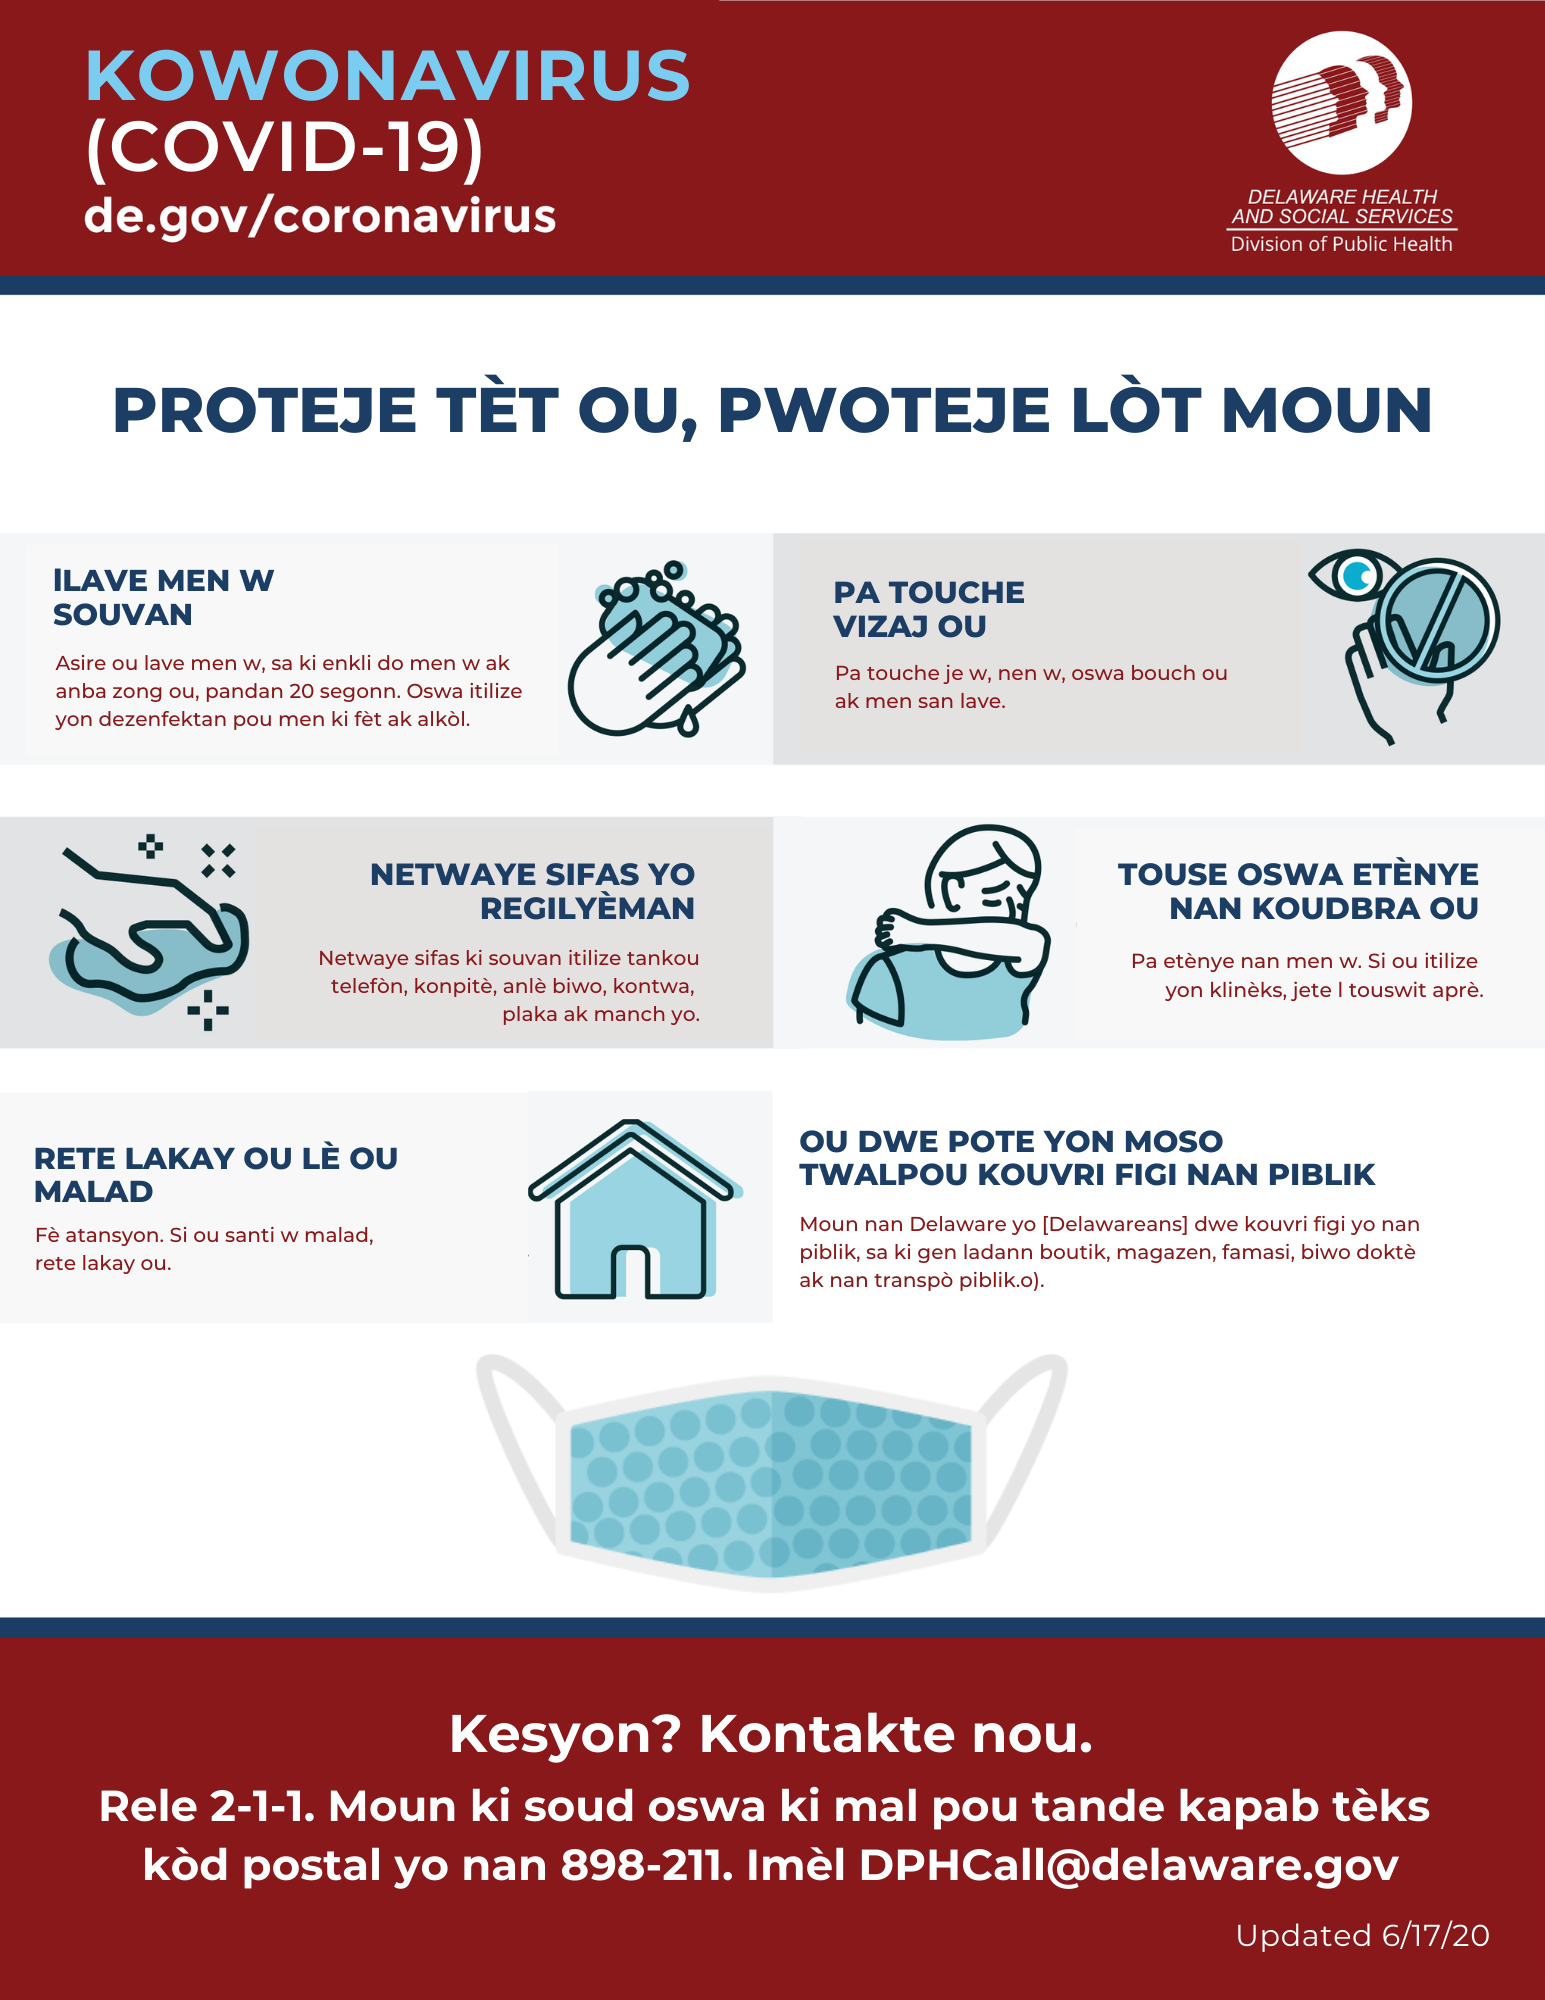 Protect Yourself and Other - Haitian Creole Version